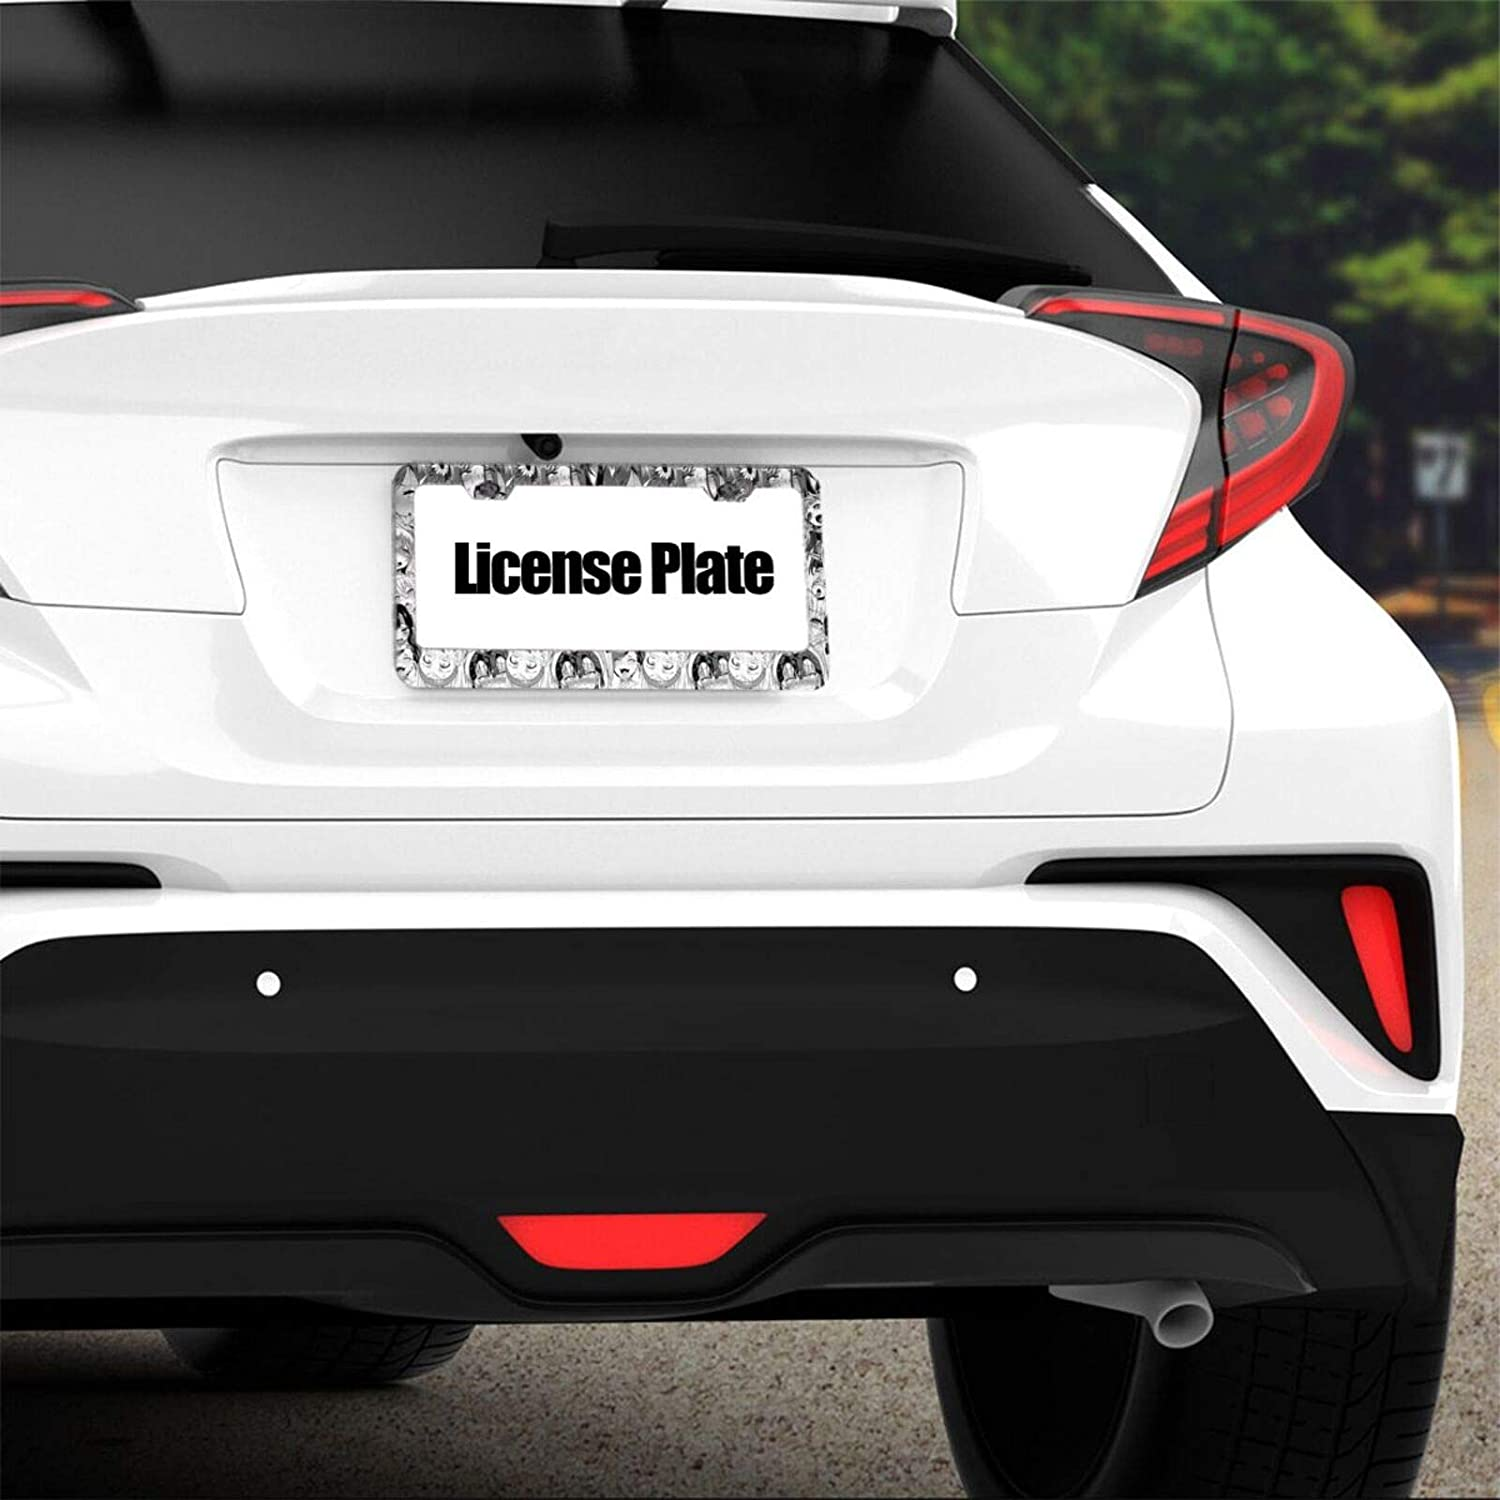 GMWD Ahegao Waifu License Plate Frame 2 Pcs Stainless Steel Car Licence Plate Covers